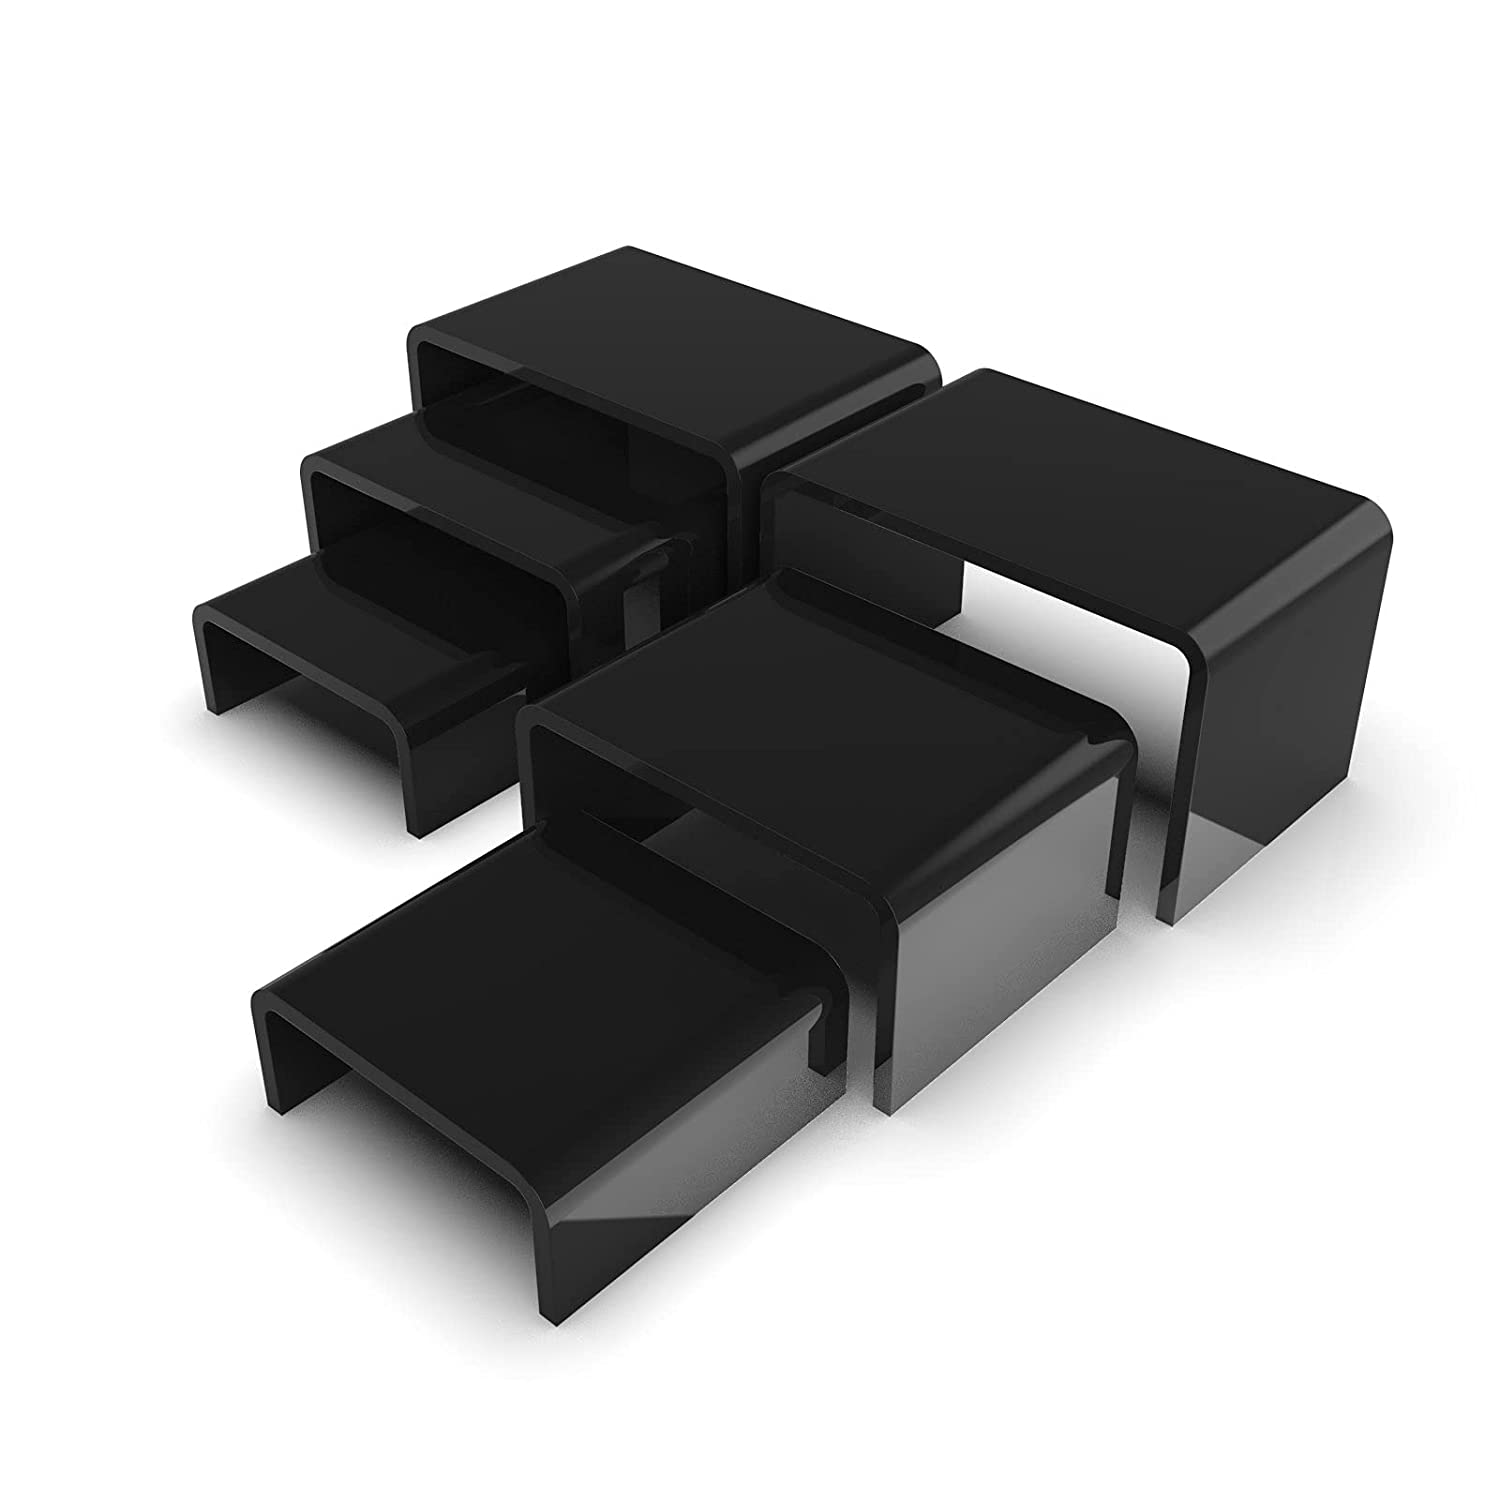 6 Piece Black Acrylic Risers | Black Display Stand for Jewelry, Food and Collectibles | Action Figurine Shelf Display | Black Tiered Display Stand